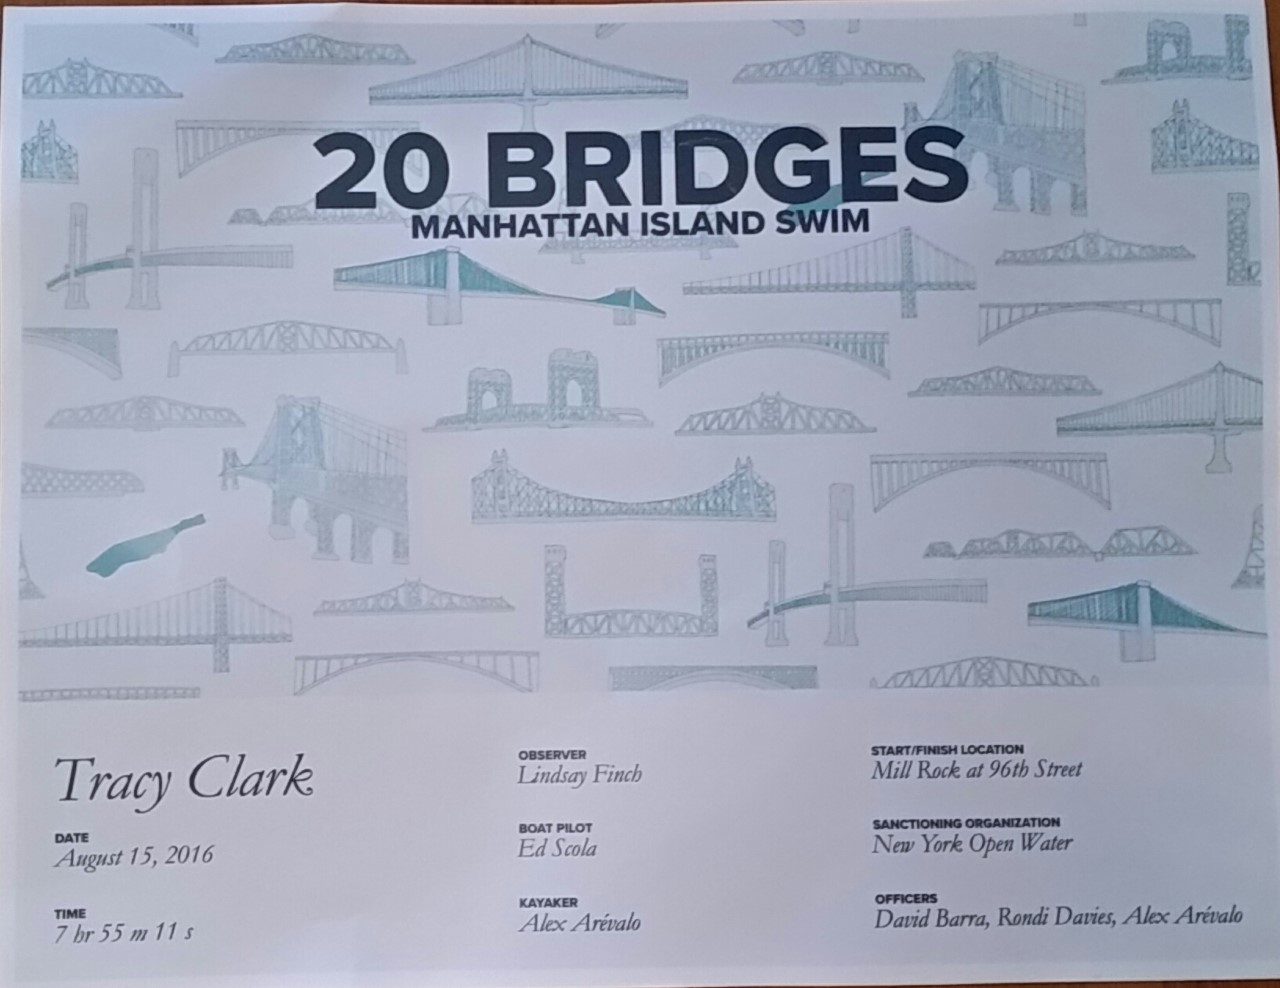 20 Bridges manhattan island swim certificate